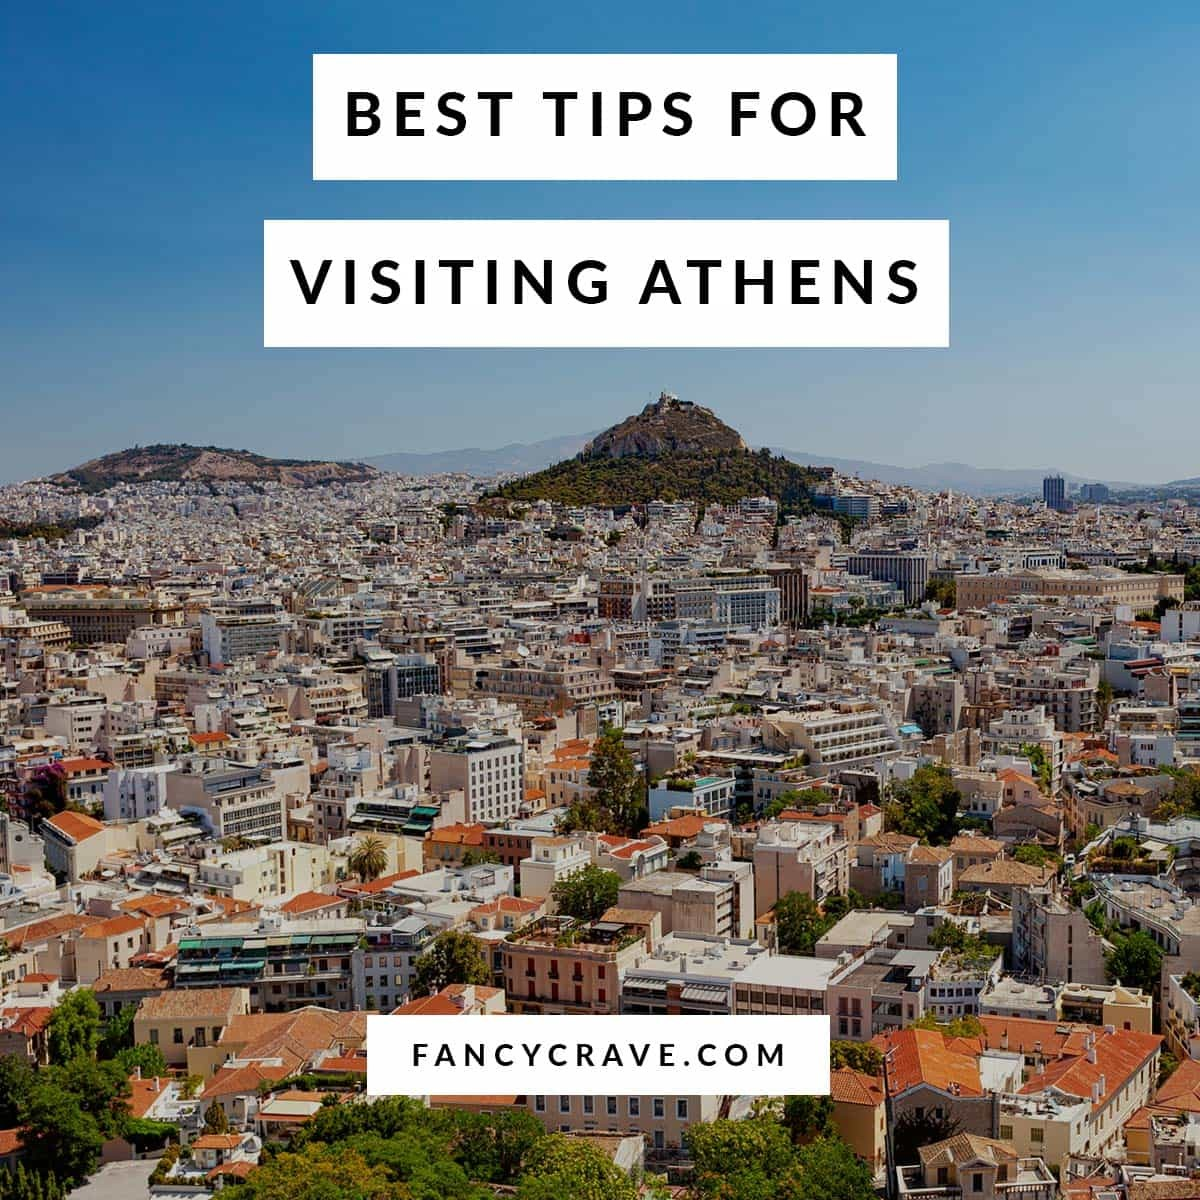 Best Tips for Visiting Athens